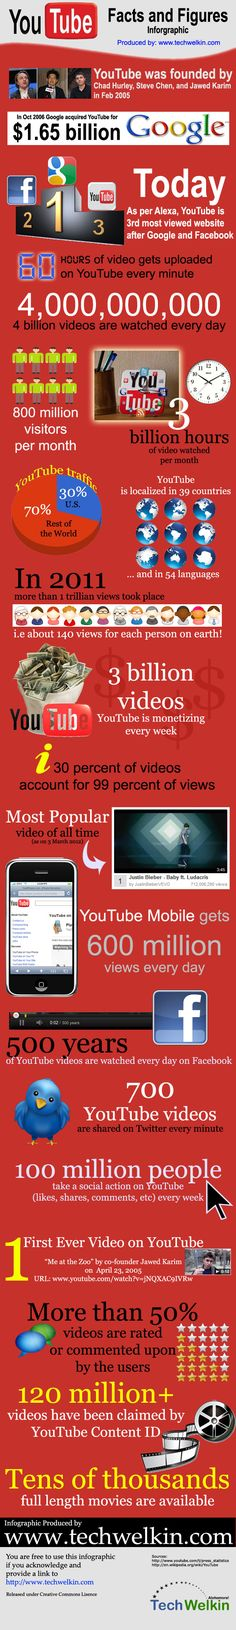 30 mind numbing #youtube facts, figures and statistics #infographic #socialmedia